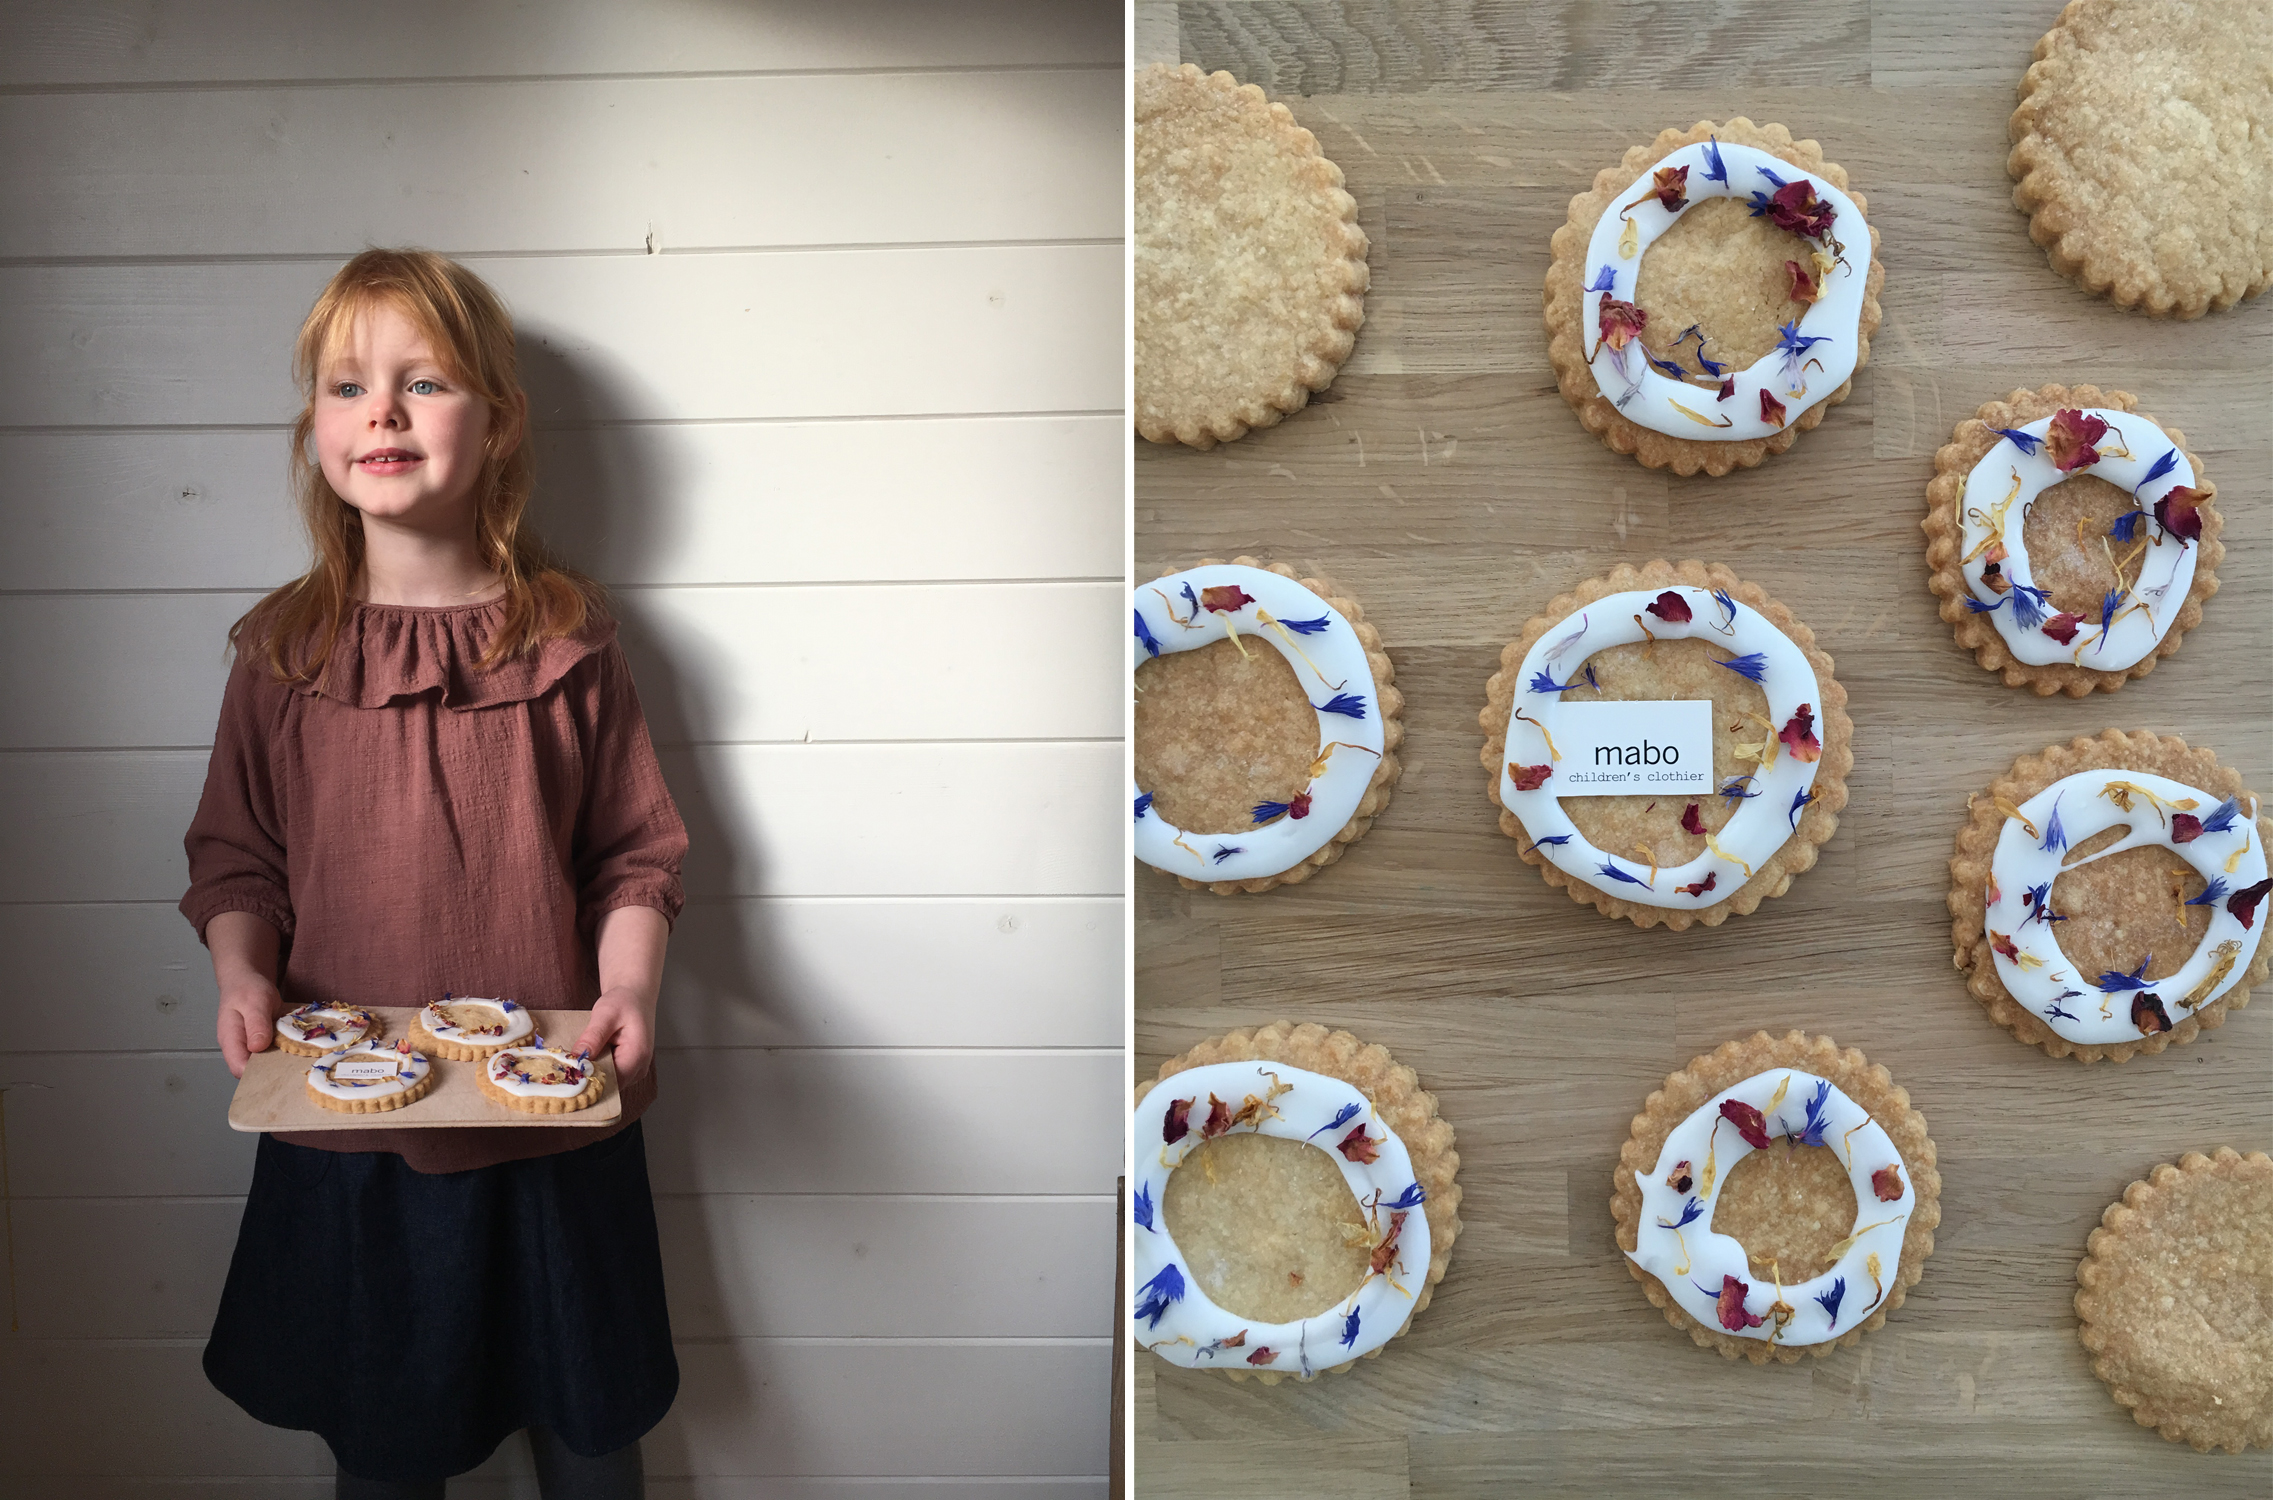 Florence with Mabo shortbread 2.jpg